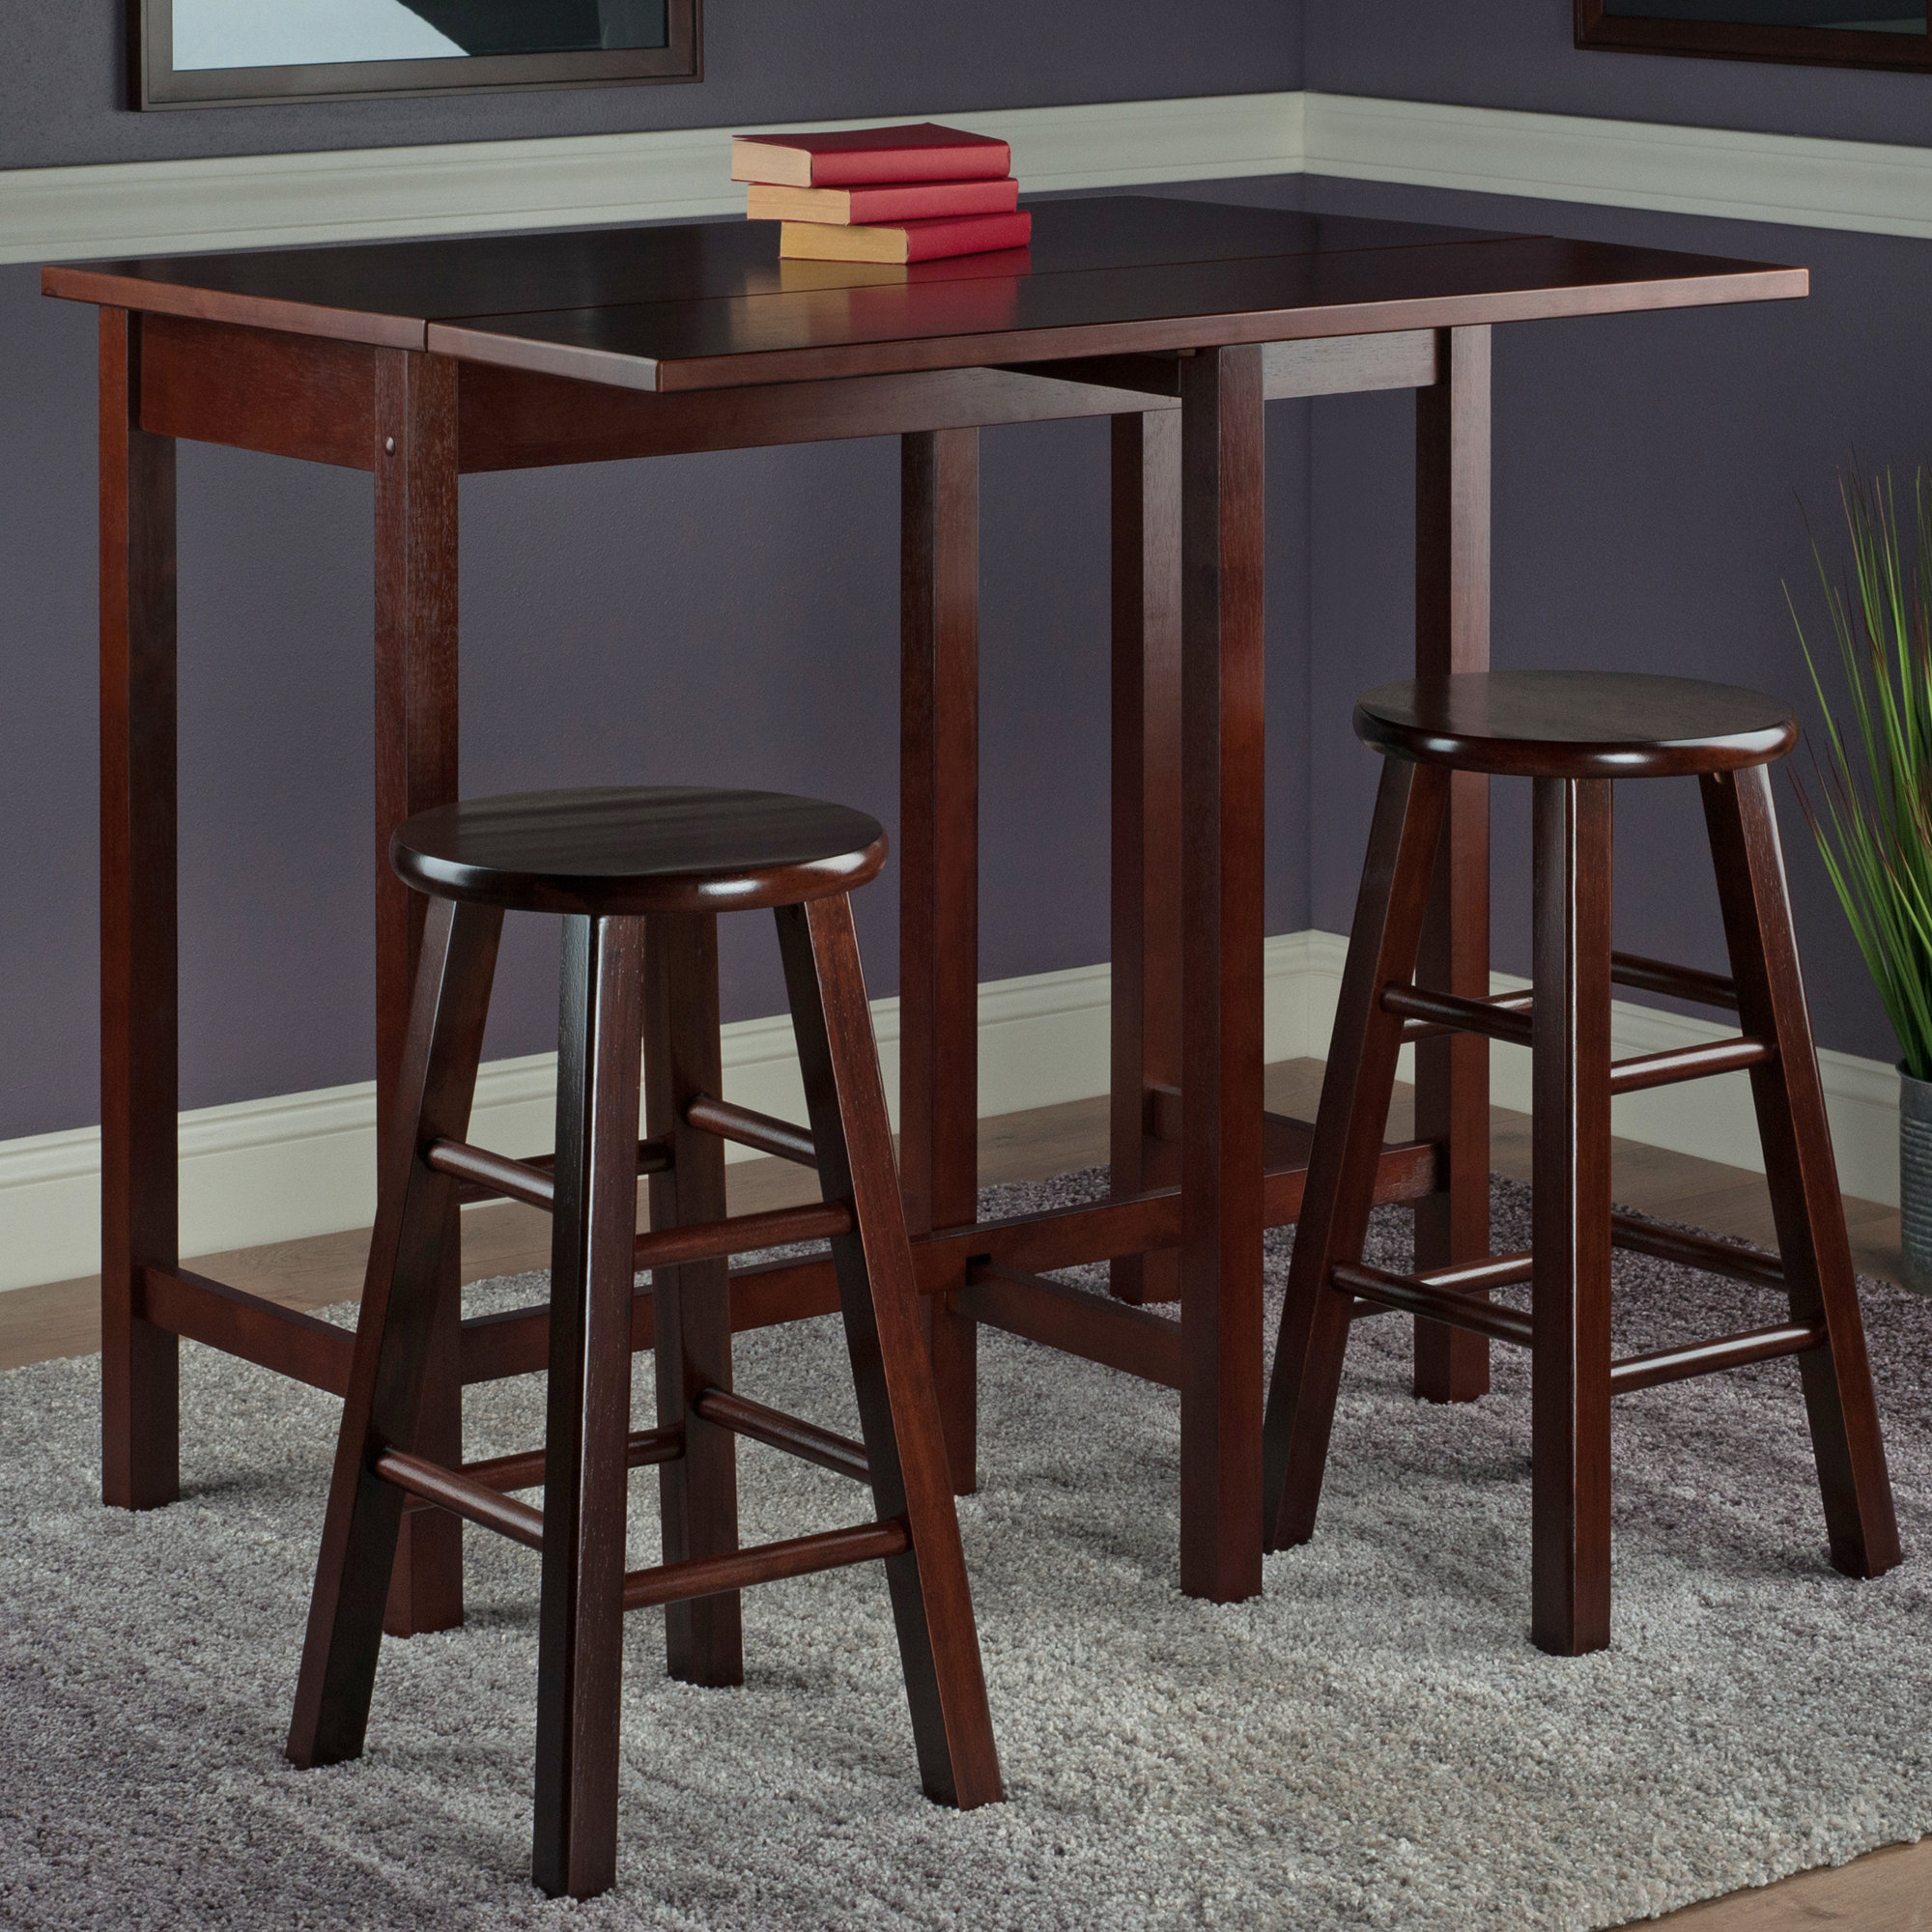 Widely Used Bettencourt 3 Piece Counter Height Pub Table Set Pertaining To Bettencourt 3 Piece Counter Height Solid Wood Dining Sets (View 20 of 20)